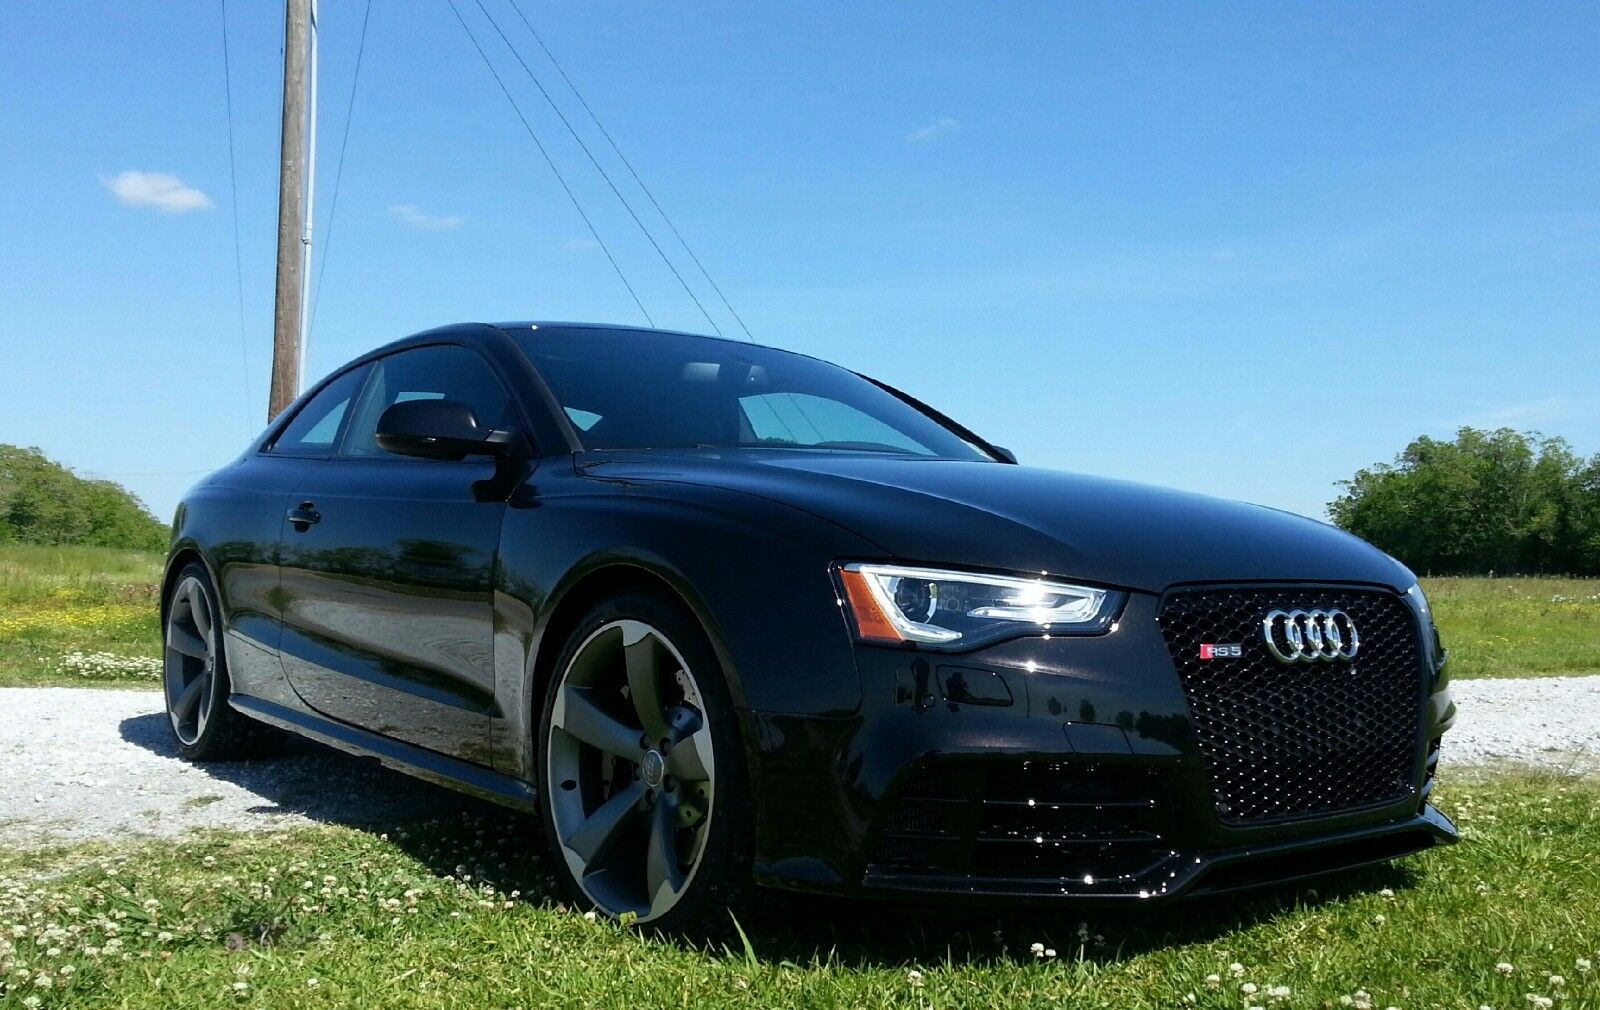 2014 Audi RS5 Coupe quattro S tronic 466HP 2014 Audi RS5 4.2L V-8 AWE exhaust (wifes daily) Last week to be listed!